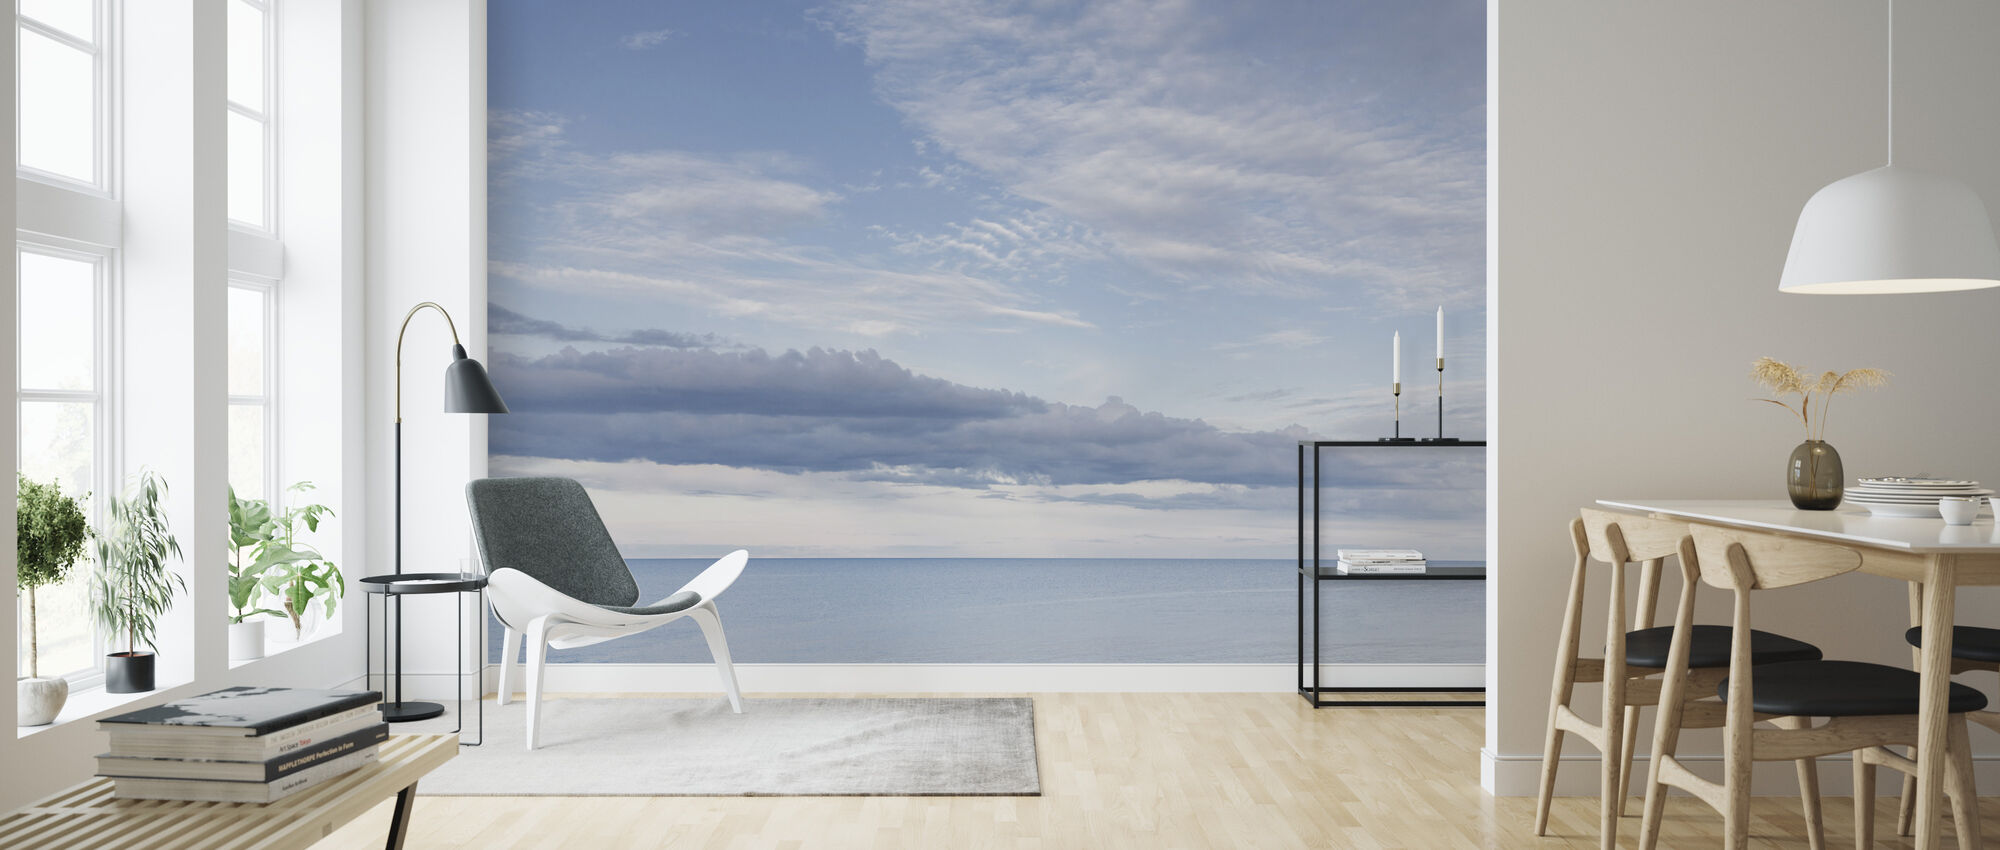 Coast of Simrishamn, Sweden - Wallpaper - Living Room